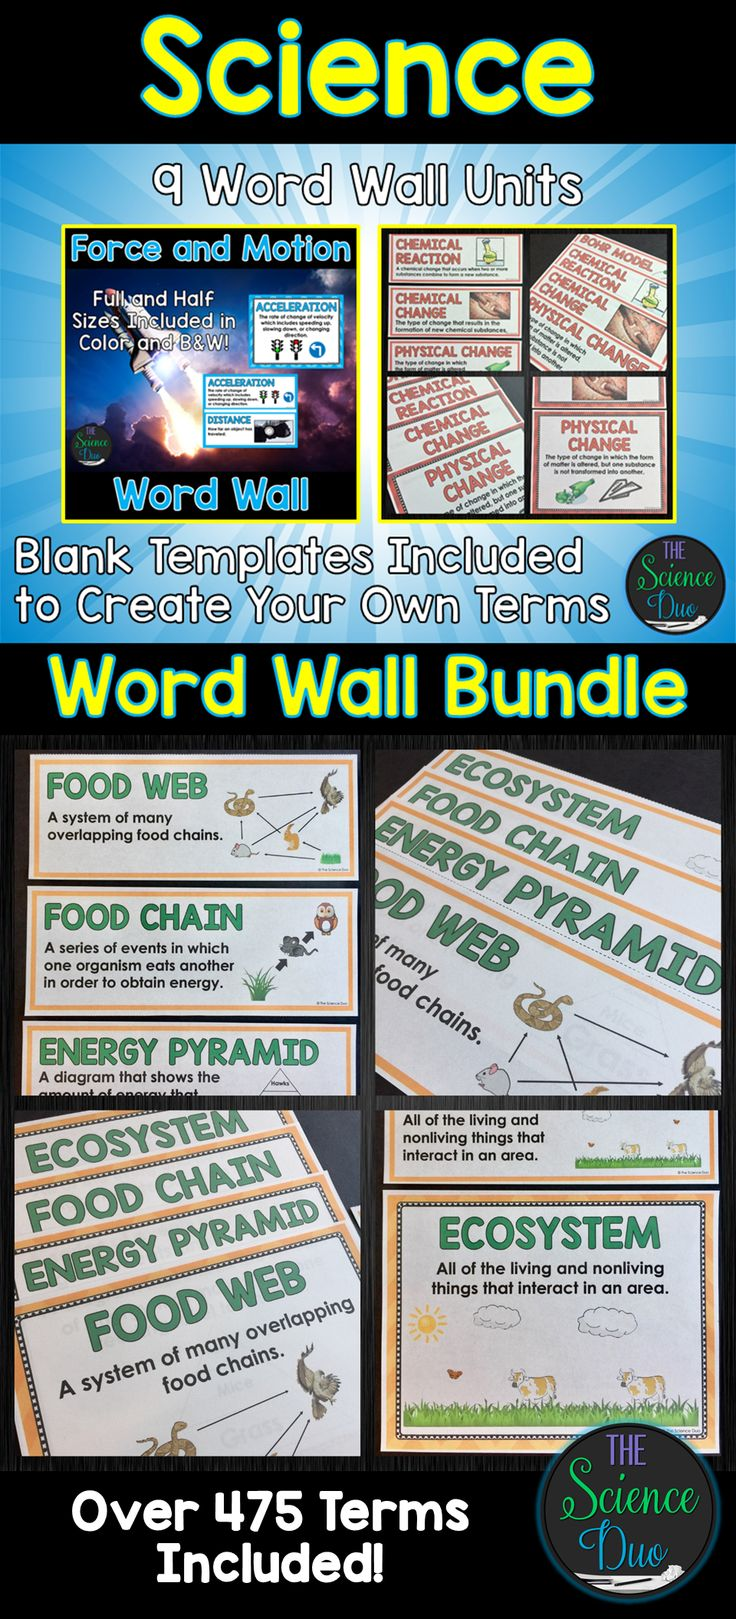 This Science Word Wall Bundle will allow you to display essential terms from your units of study in a visually appealing way. Post these words on the board or wall when learning new content or reviewing important standards. Word walls are a great way to help your students retain vocabulary throughout the year.